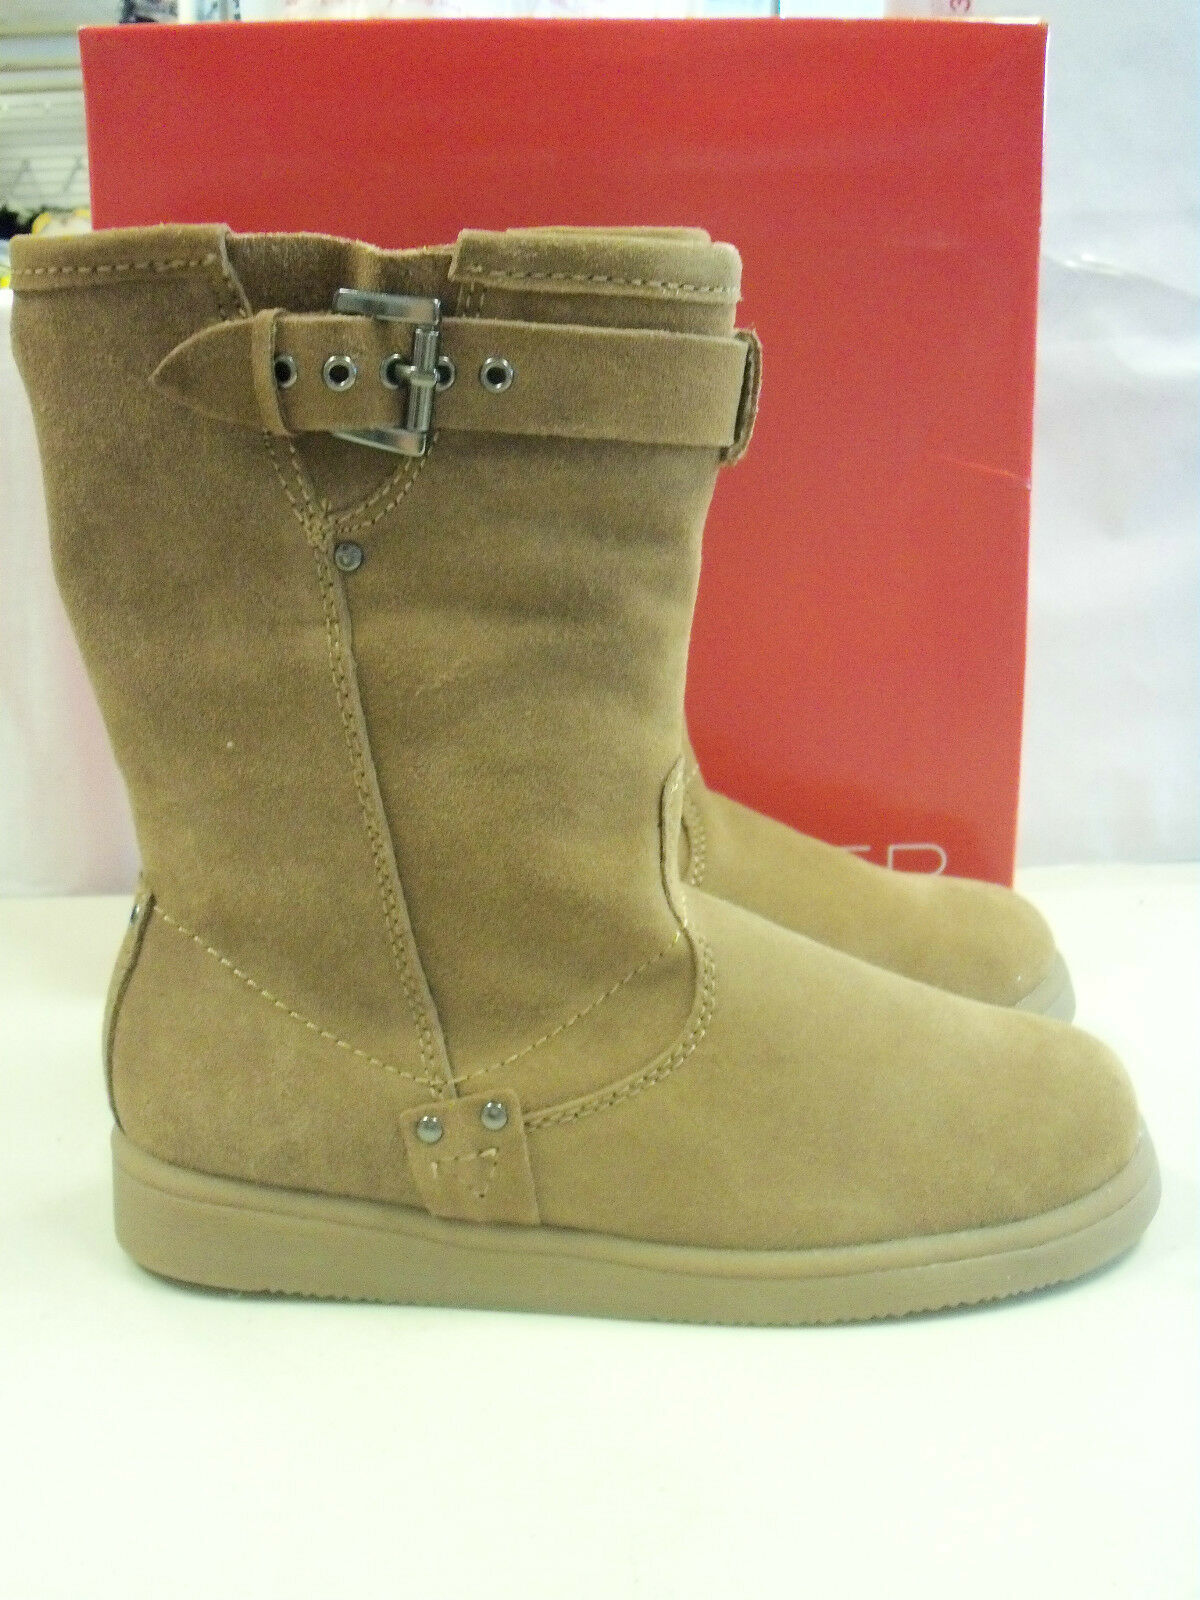 Marc Fisher New New New Womens Fearra Light Brown Suede Boots 7 M shoes b56086